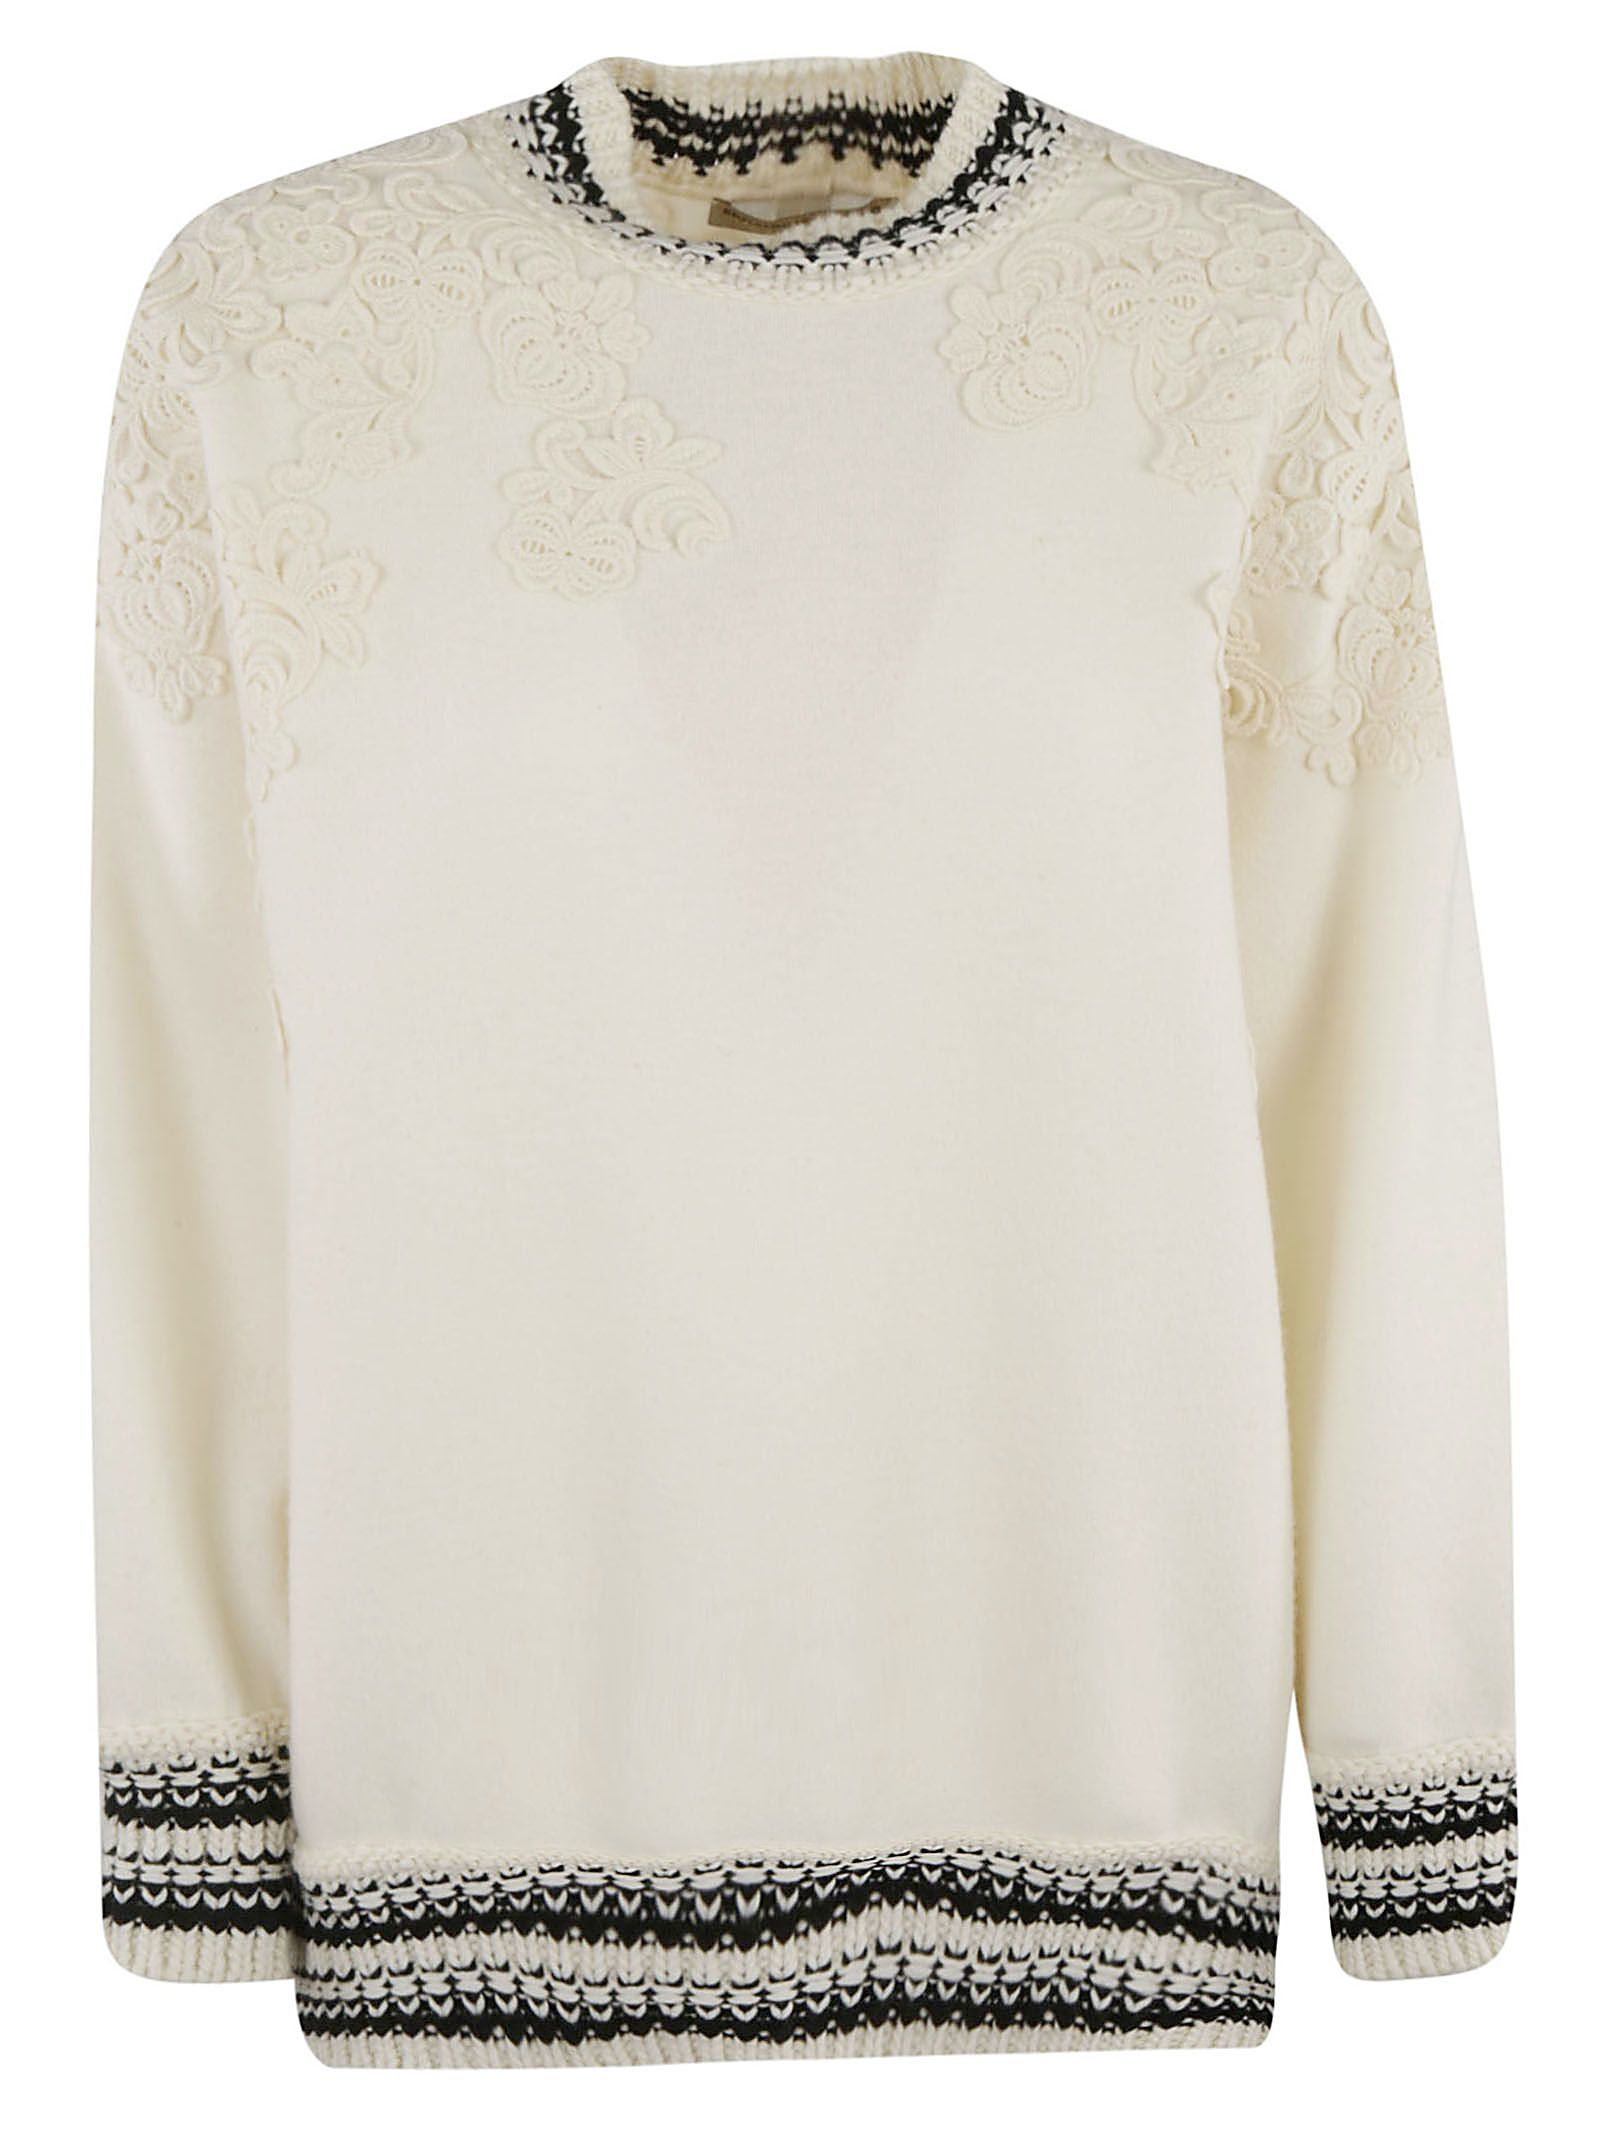 Ermanno Scervino LACE DETAILED TOP